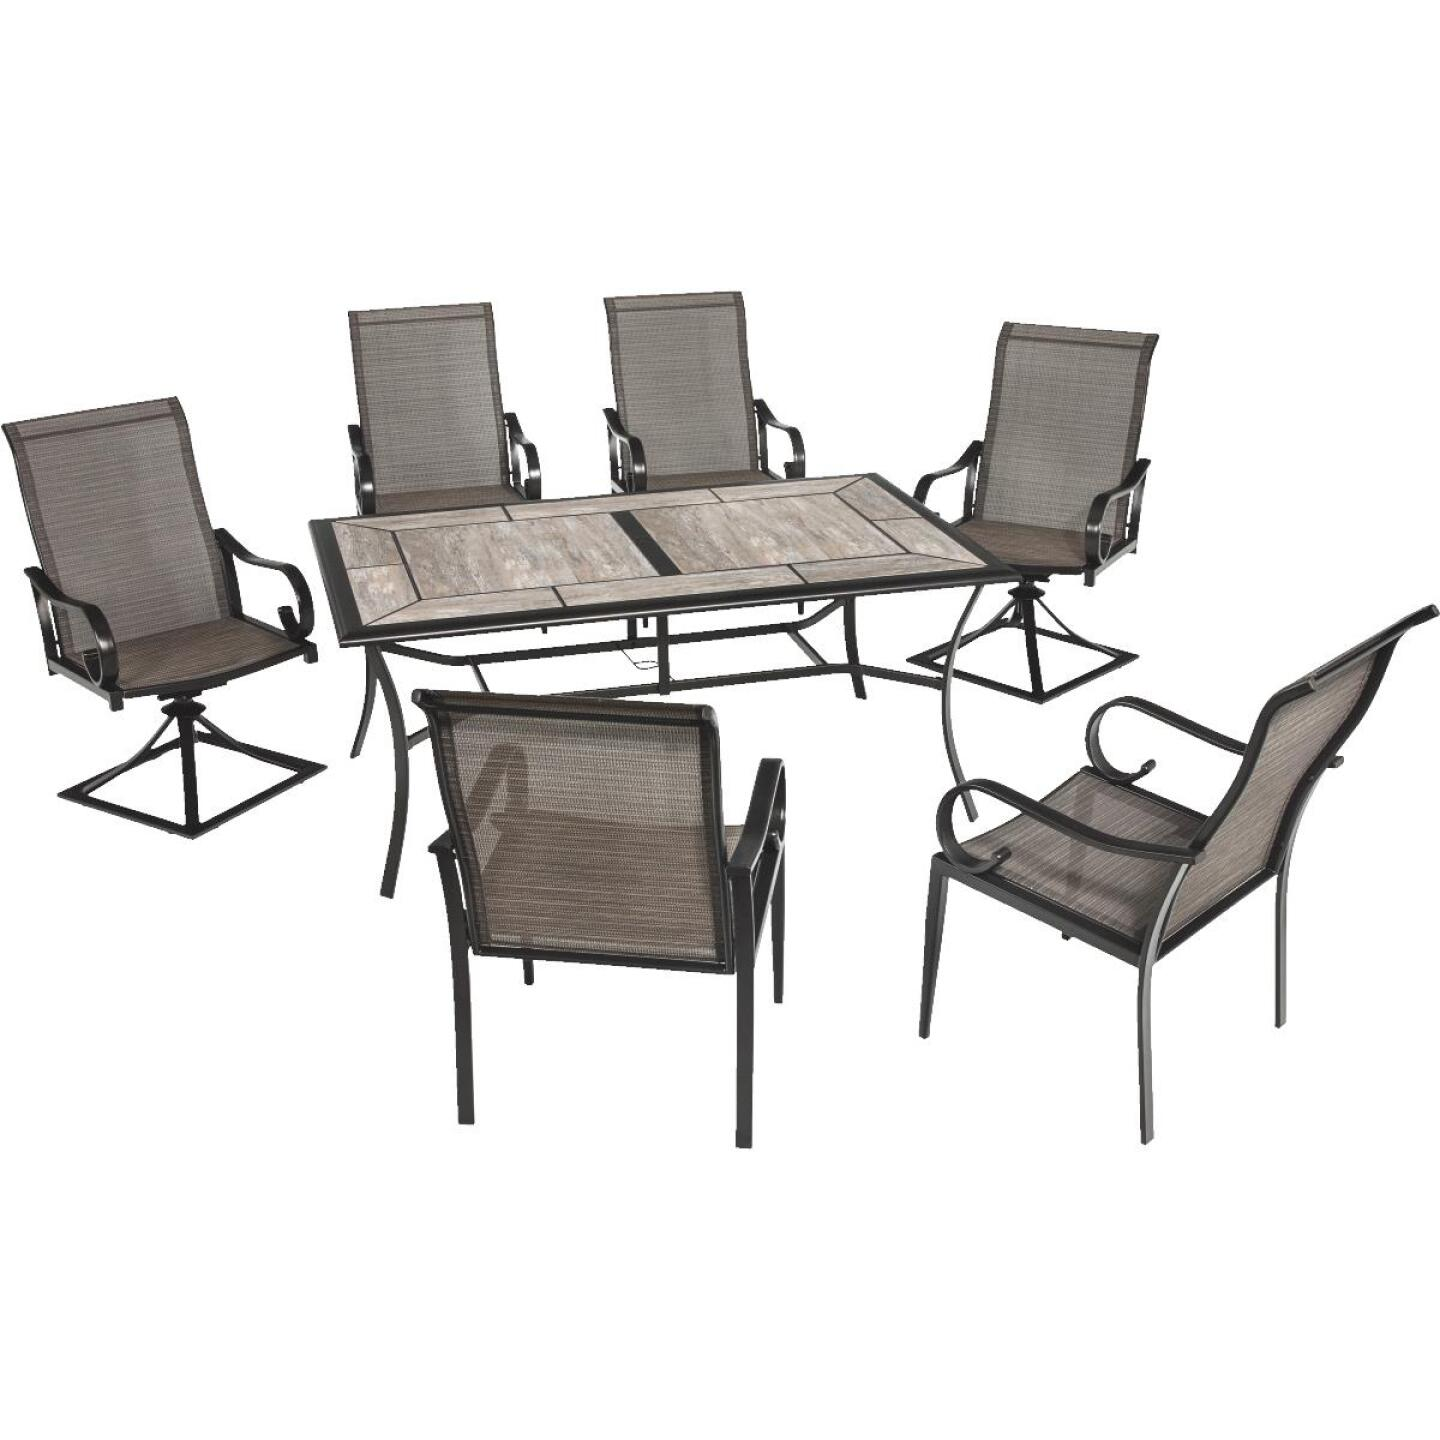 Outdoor Expressions Berkshire 7-Piece Dining Set Image 25